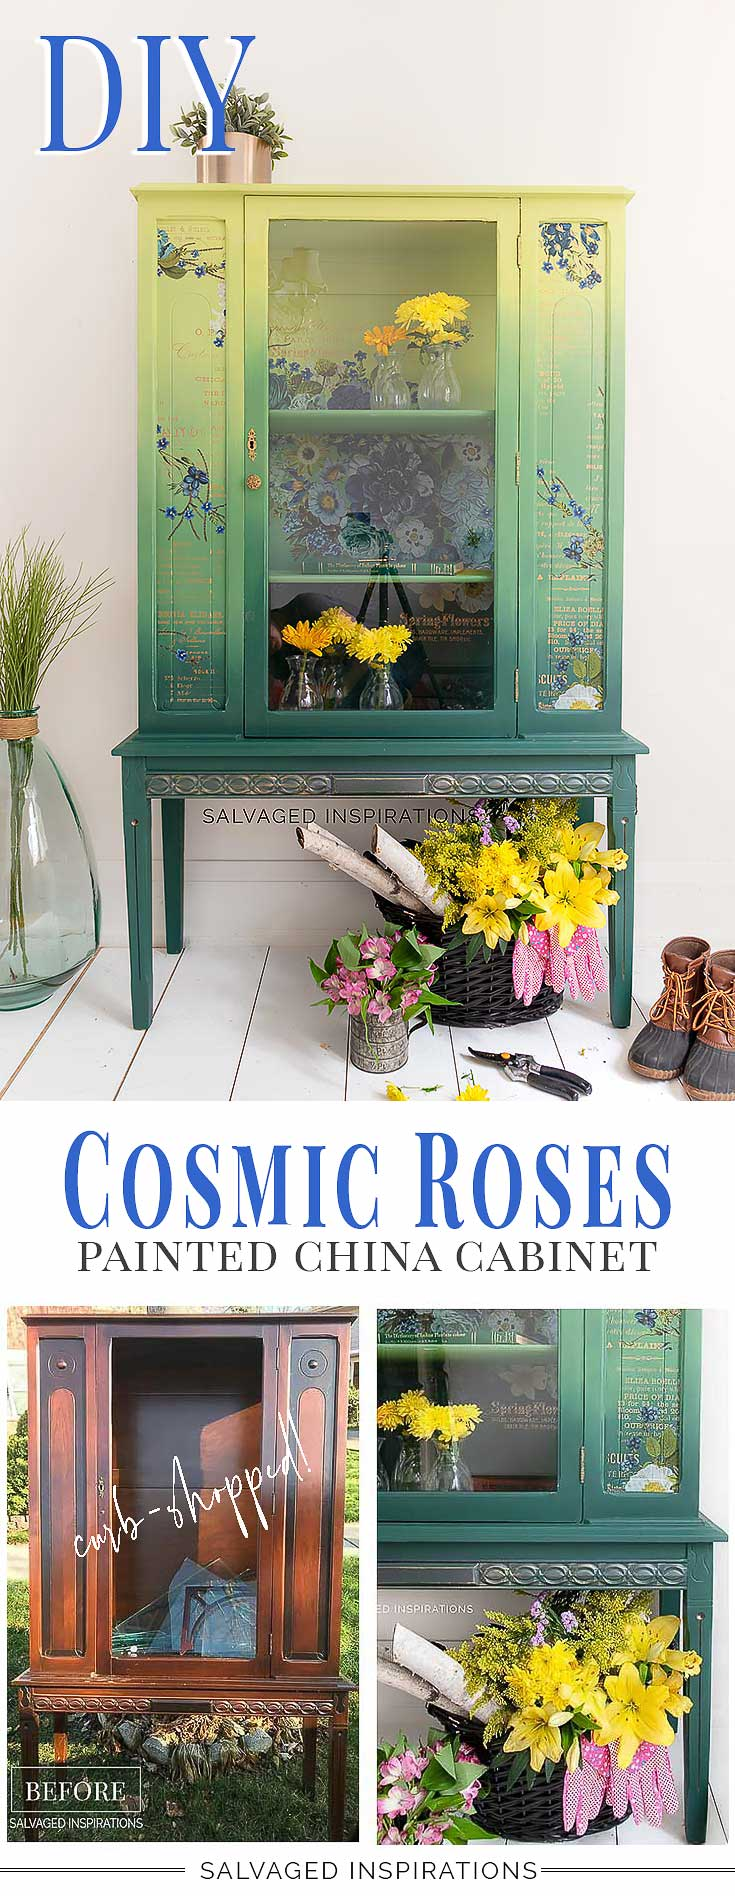 Painted China Cabinet w Cosmic Roses Furniture Transfer